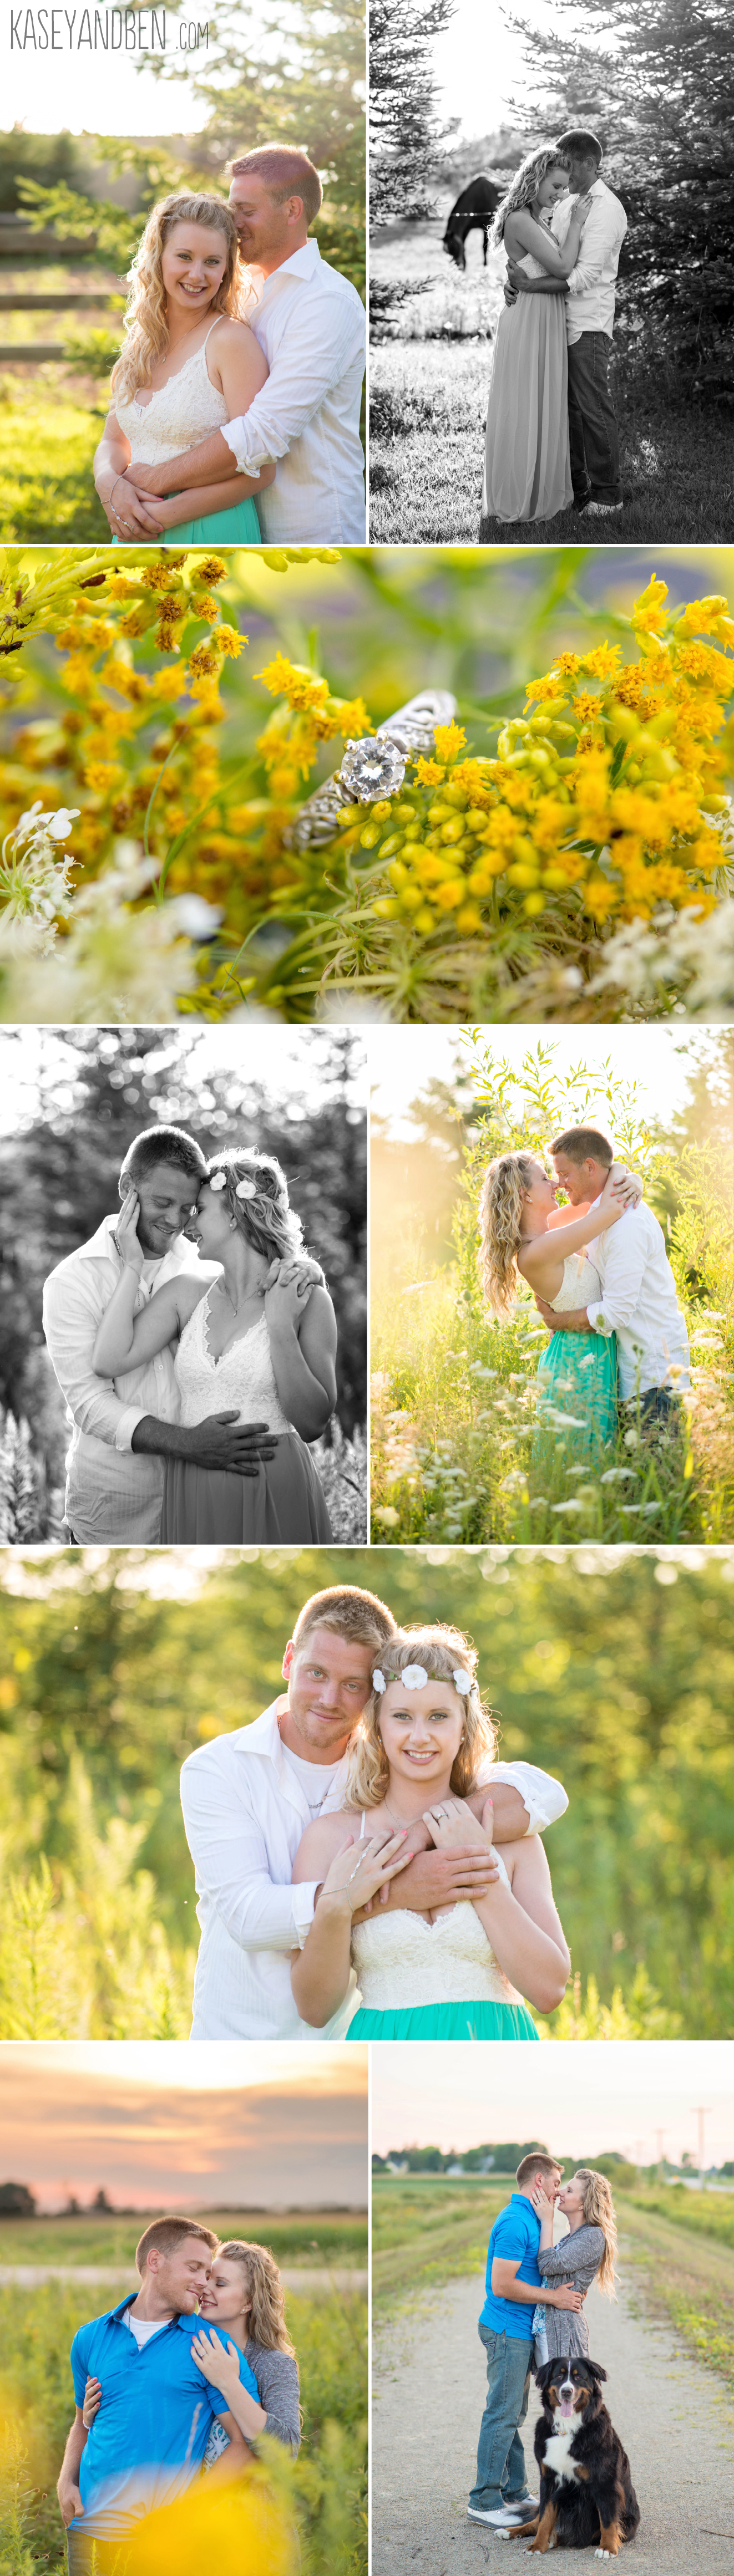 Suamico-Engagement-Wedding-Photography-Black-Creek-Green-Bay-Country-Bogo-Dog-Romantic-Photographer